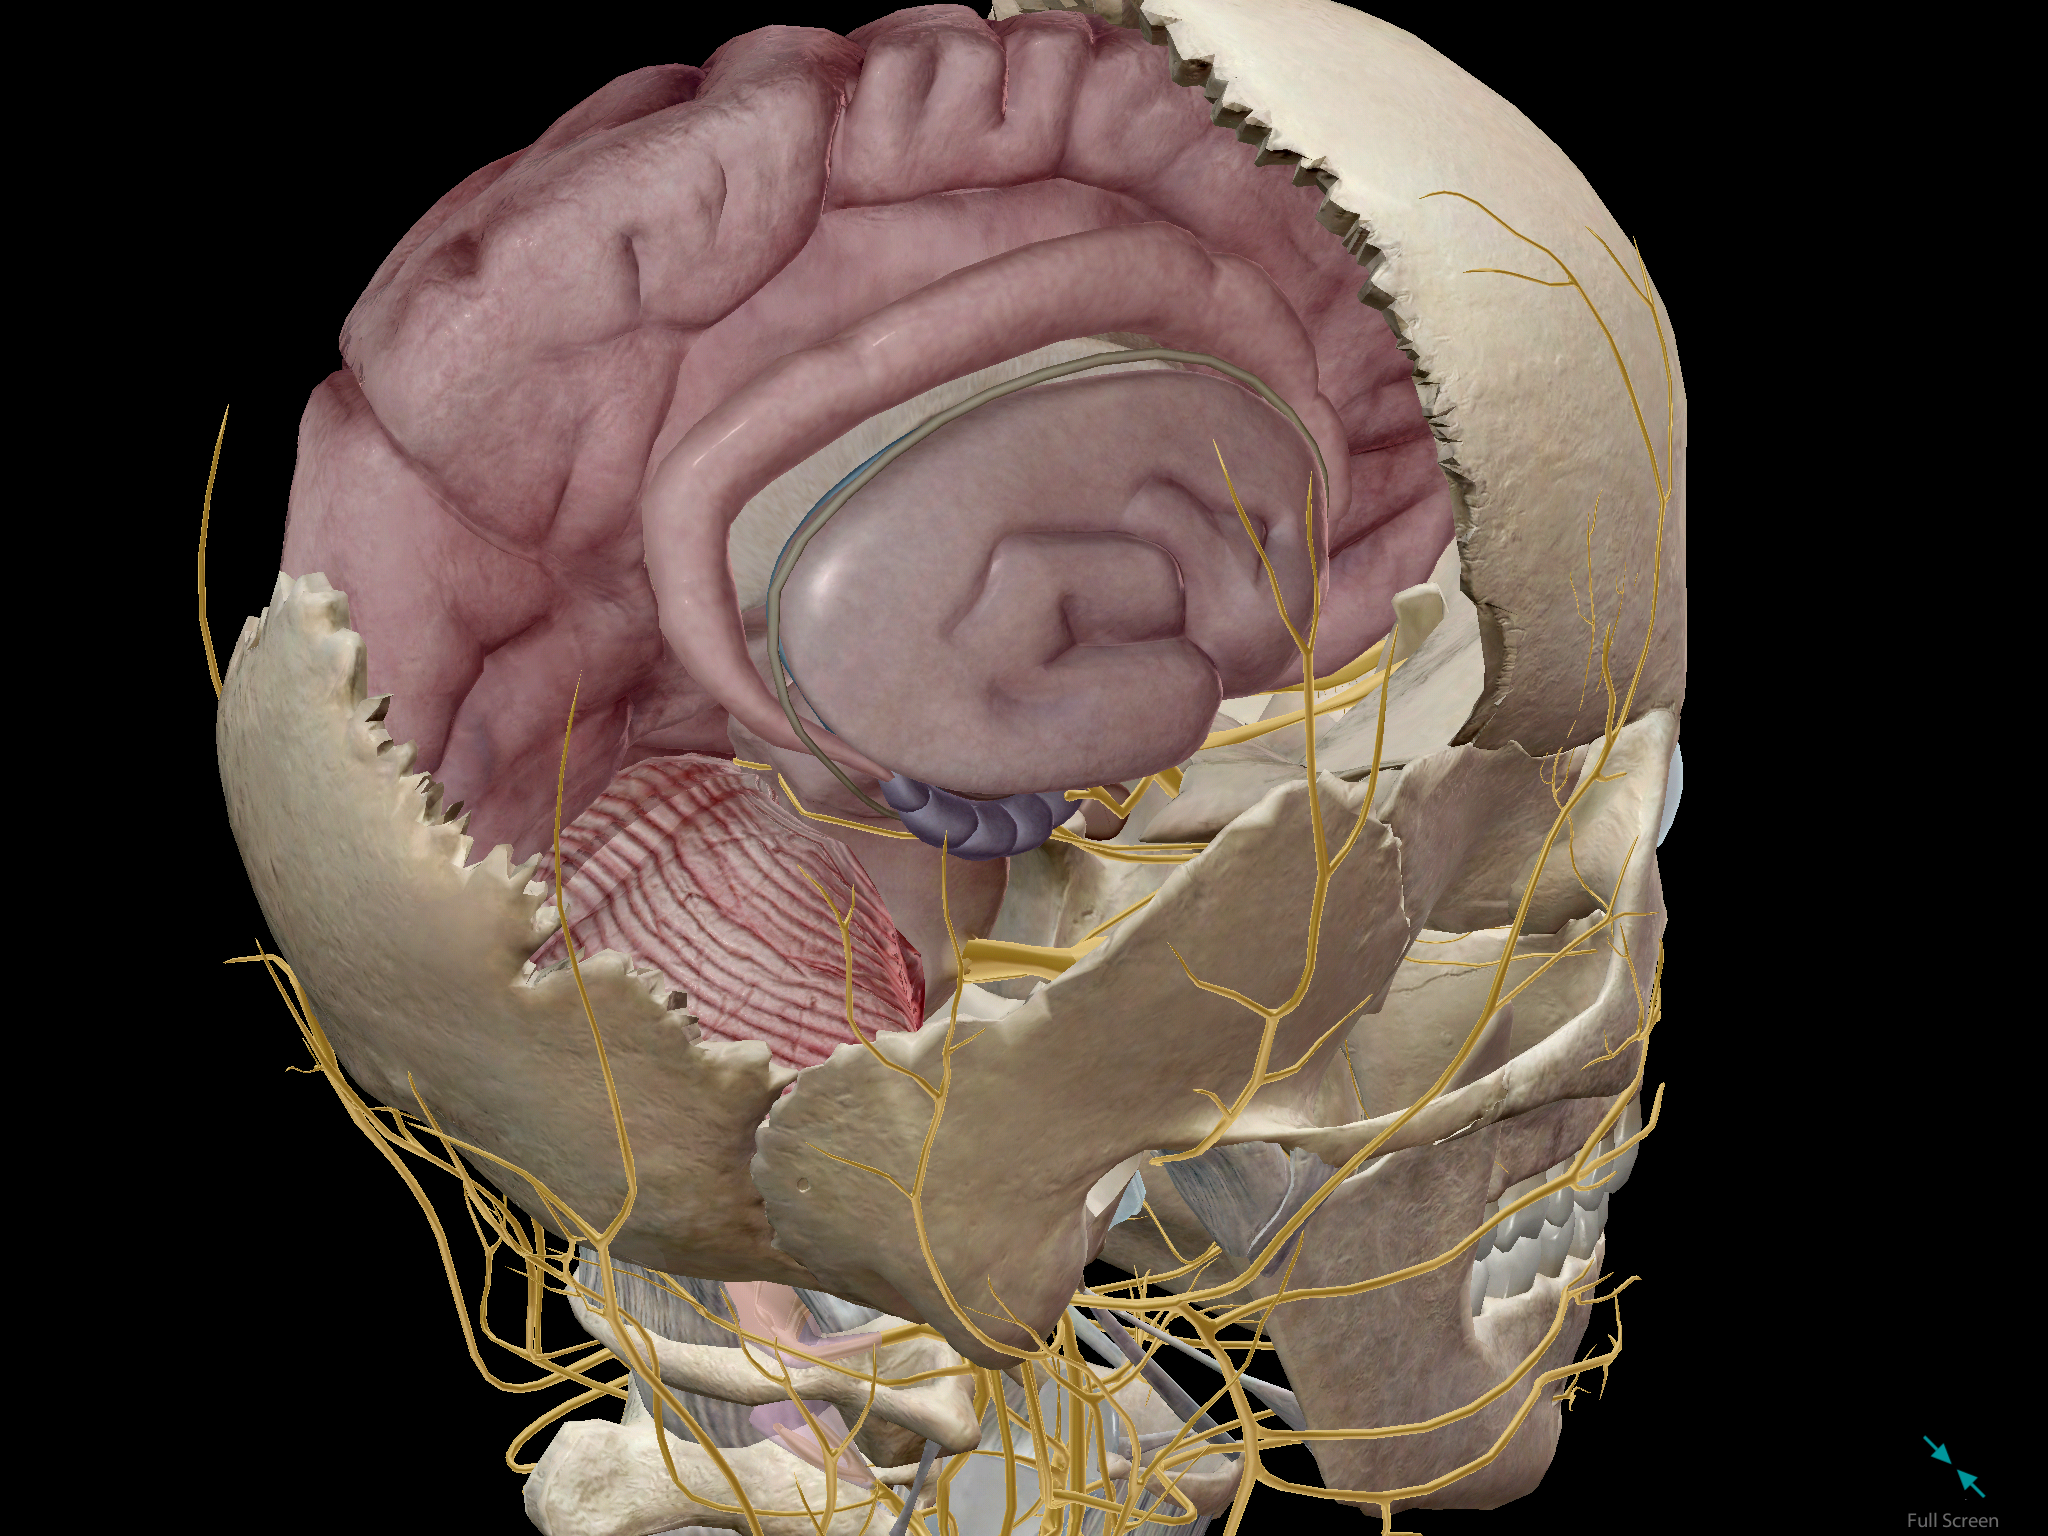 Cross-section of the human brain within the context of the skull